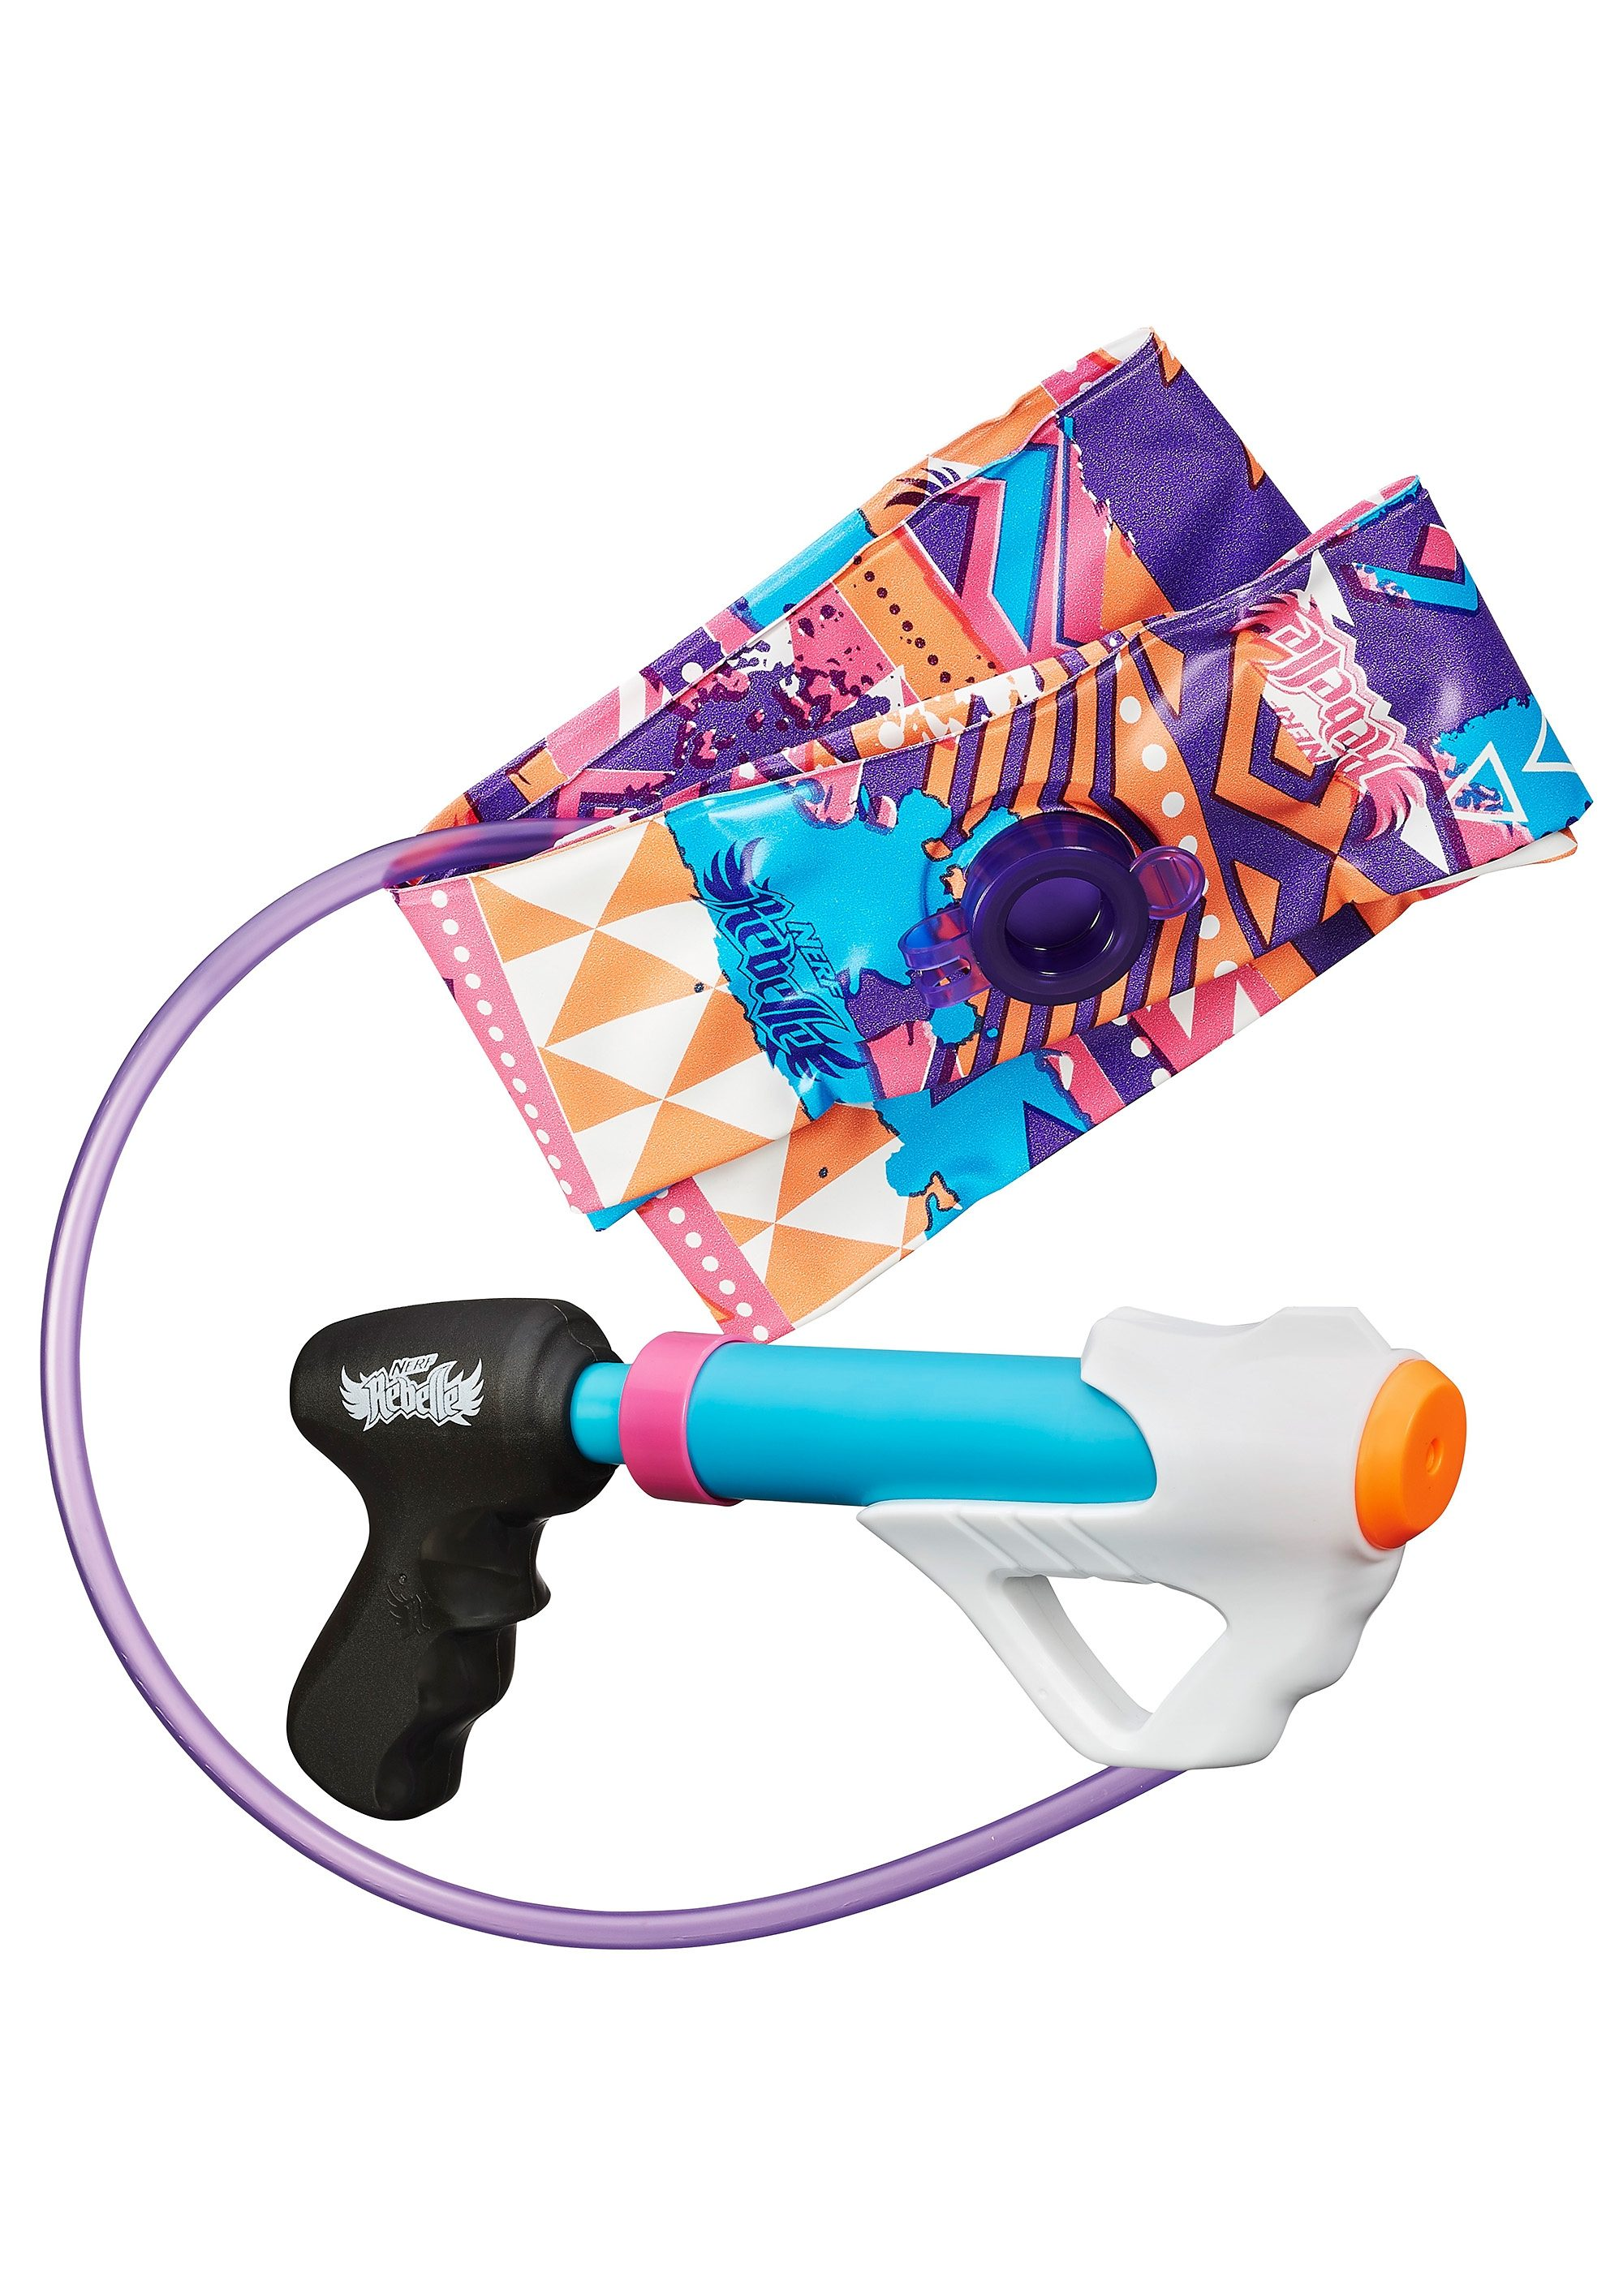 Hasbro Shooter »NERF Rebelle Super Soaker Wave Warrior«